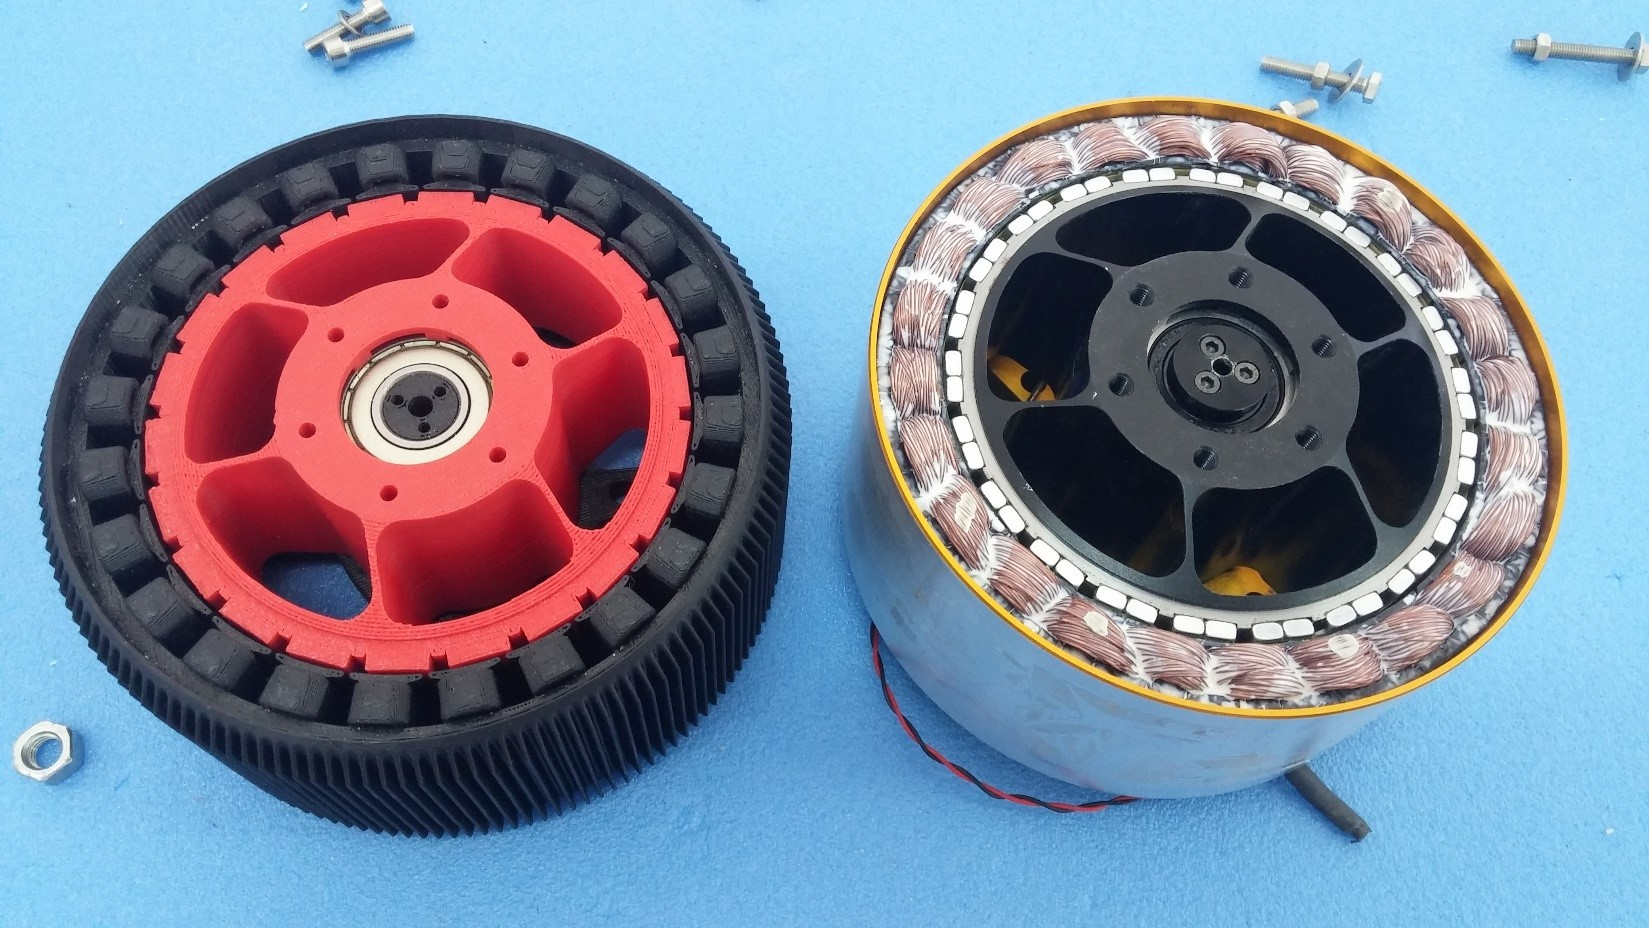 The 3D printed wing tip motor and its final production counterpart right. Image via Eviation.